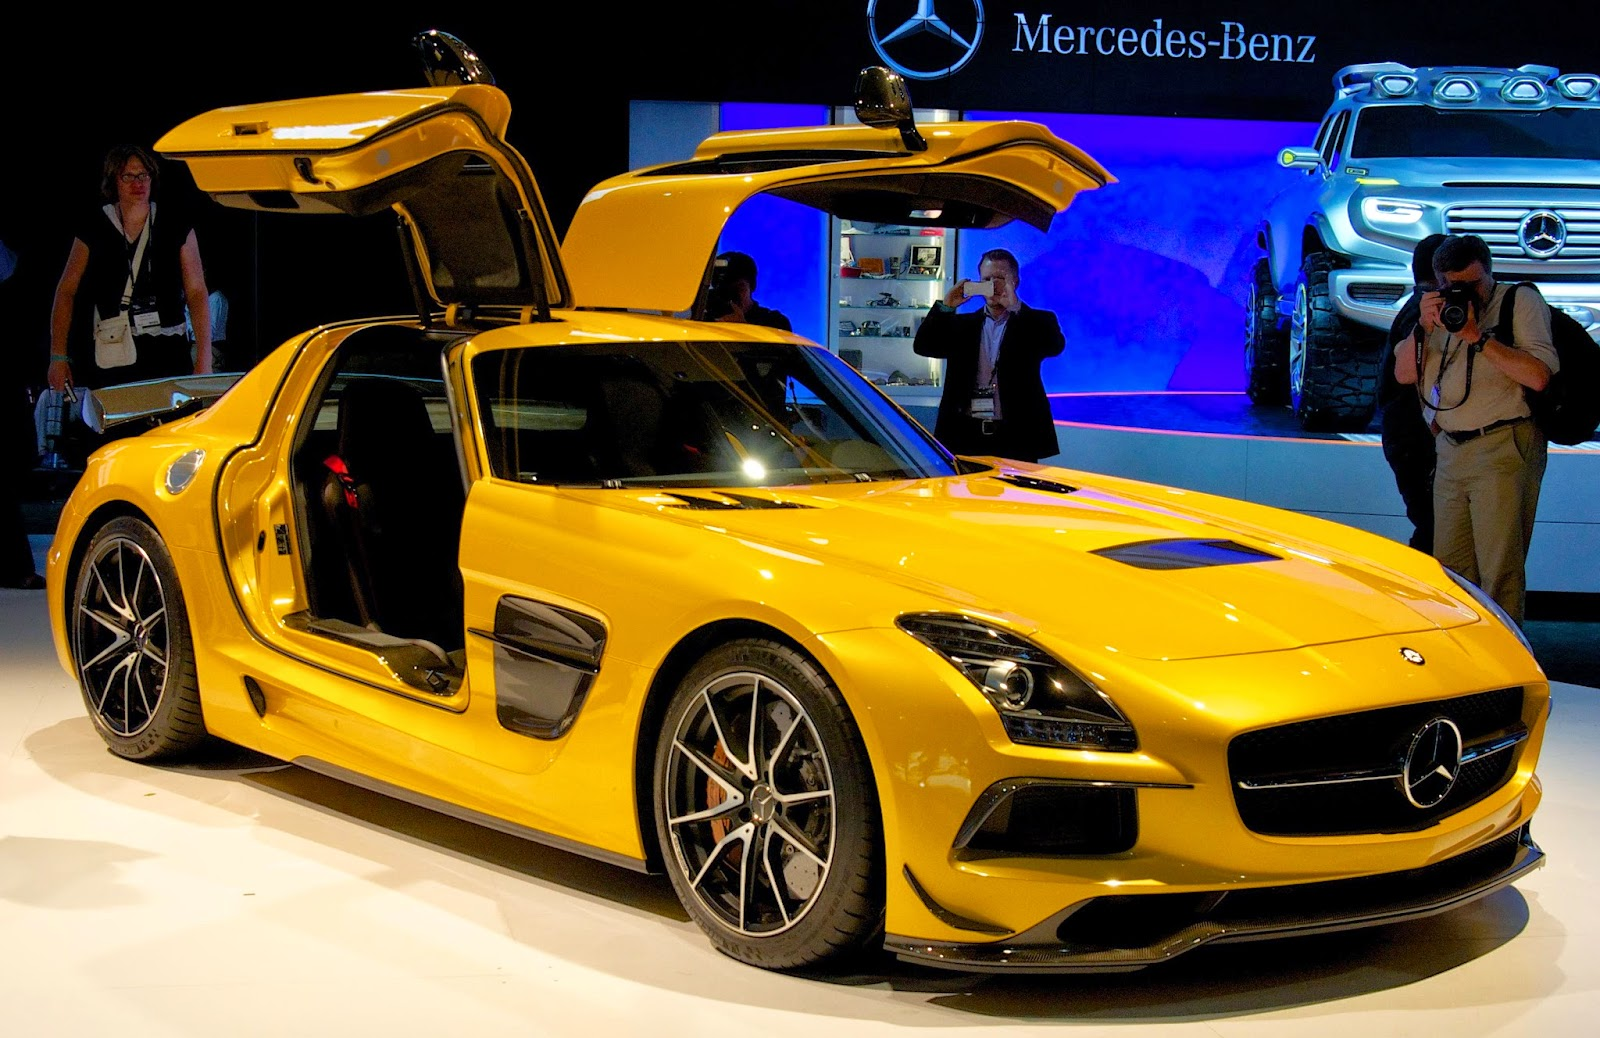 Mercedes-Benz SLS AMG Black Series (supercar)